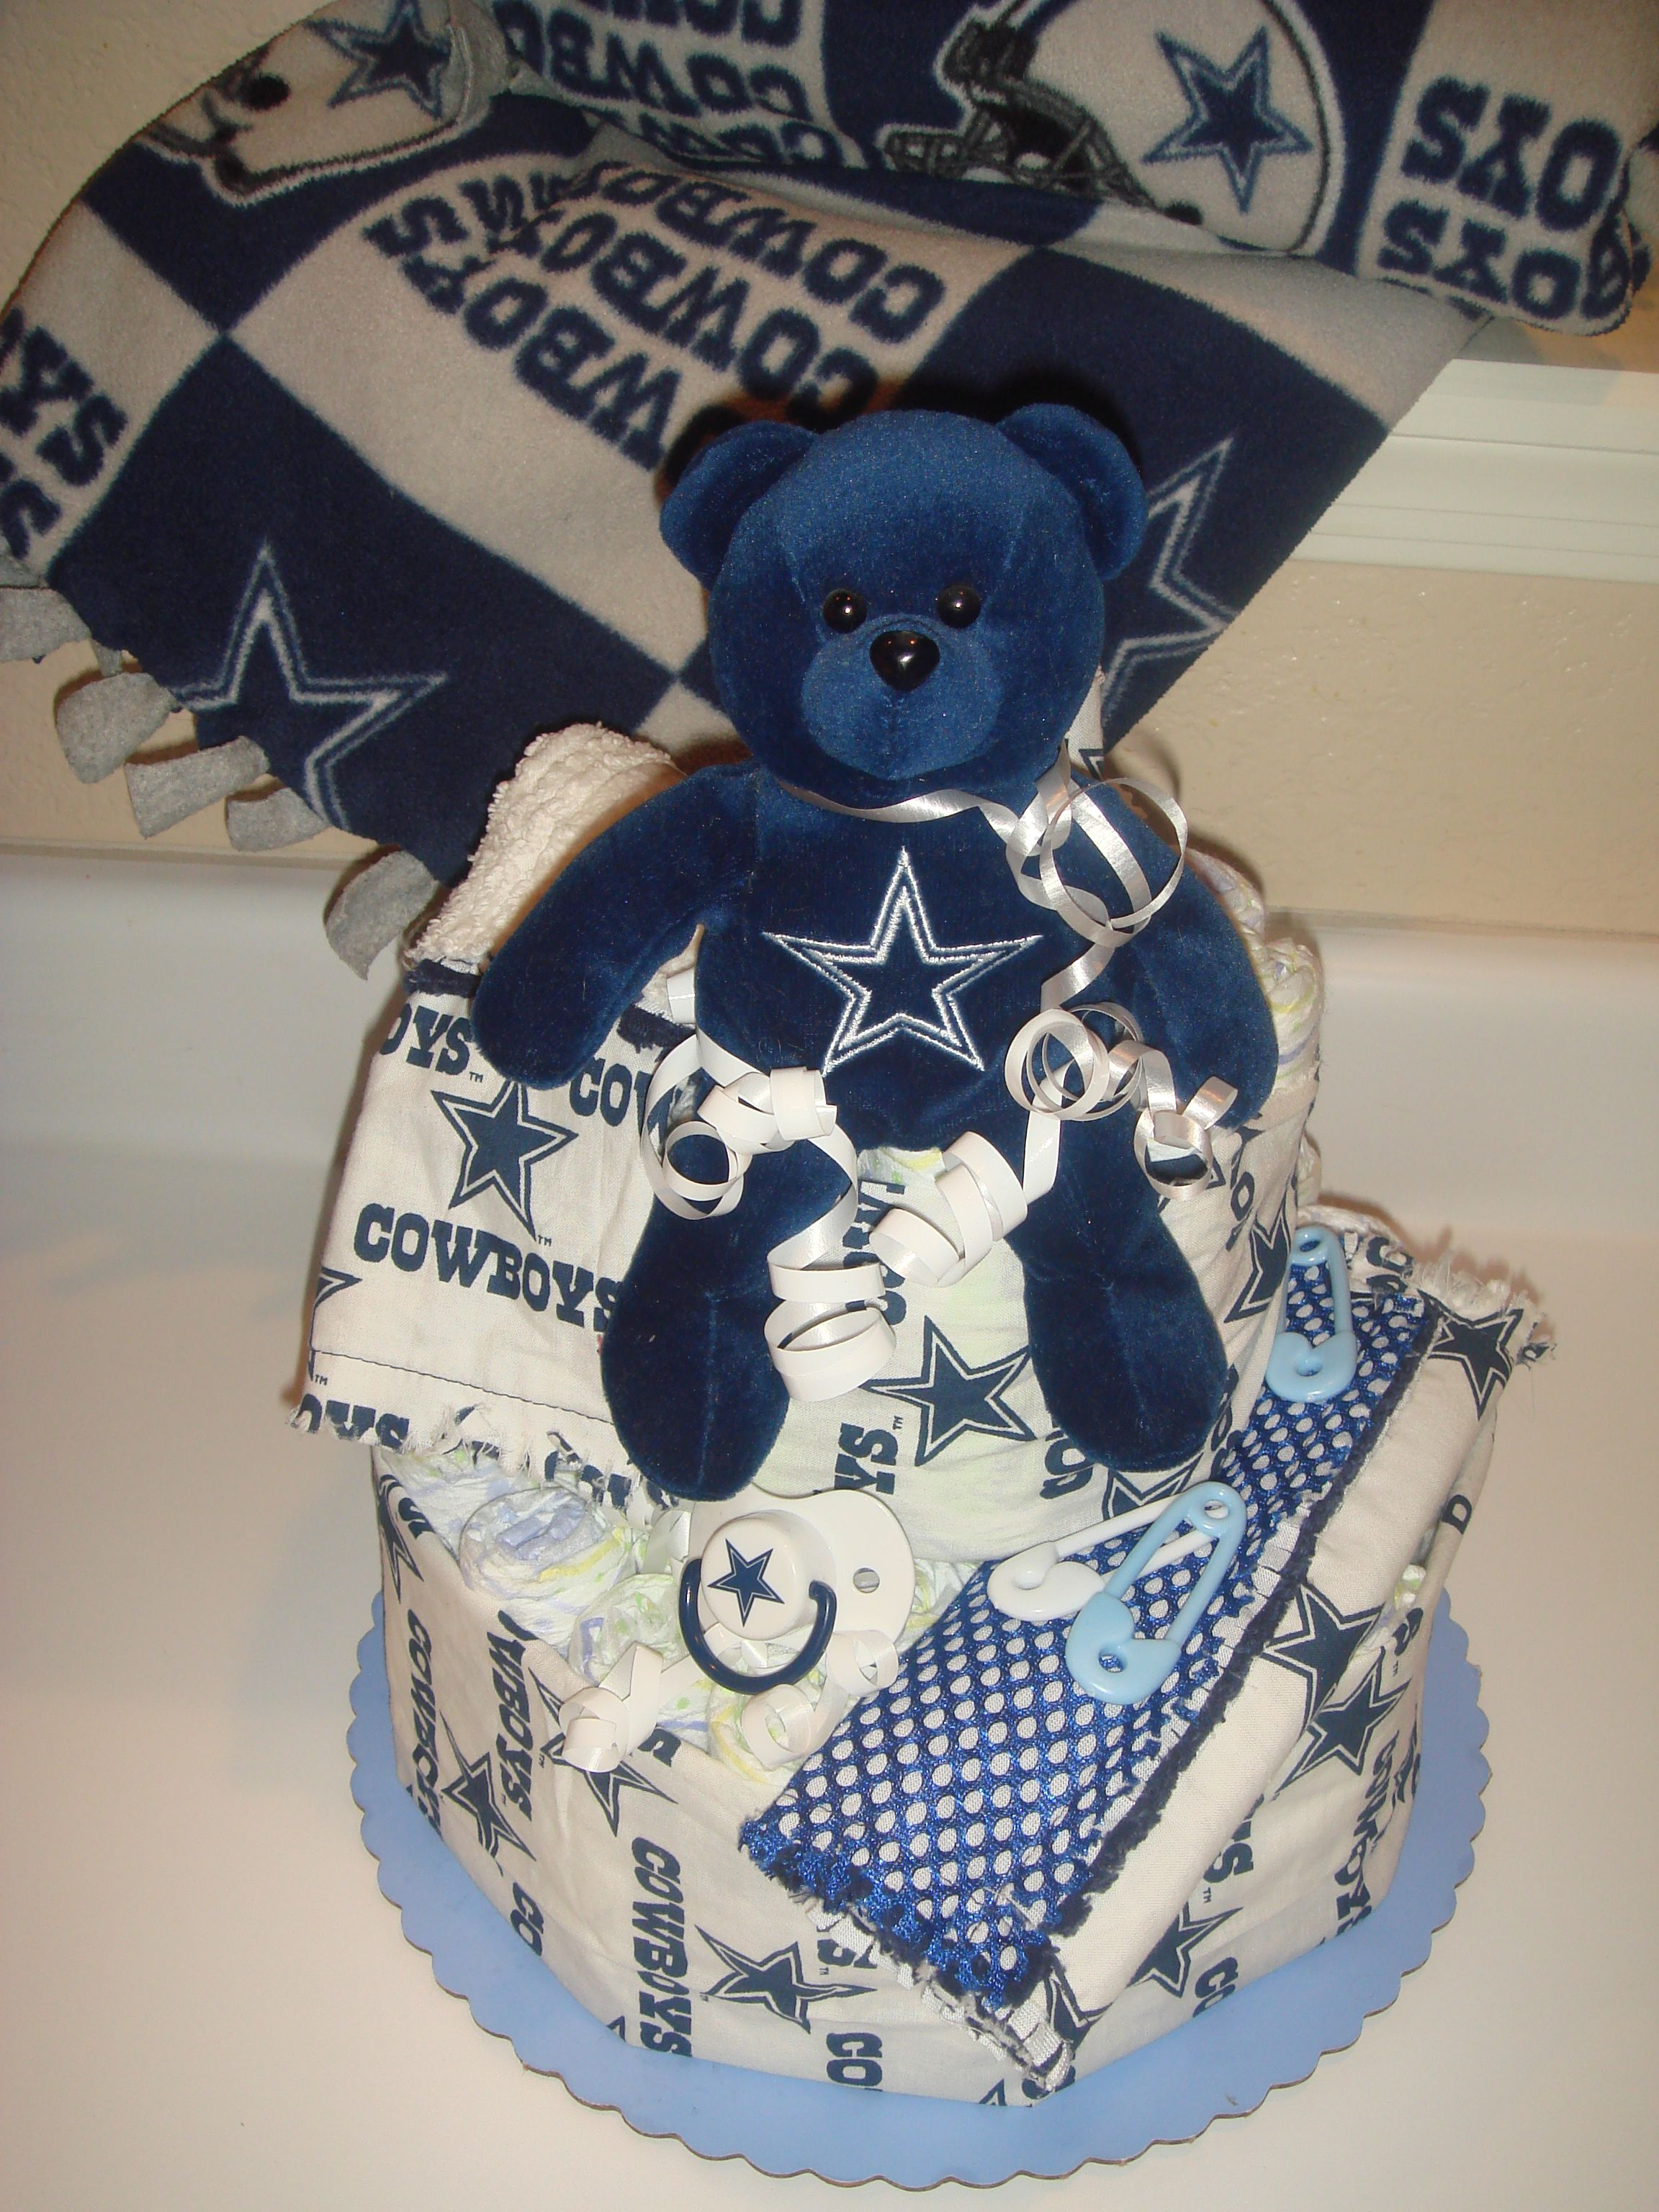 39fa064cf527 Diaper cake and tie blanket not with the Cowboys but SOONERS/DUKE/VIKINGS